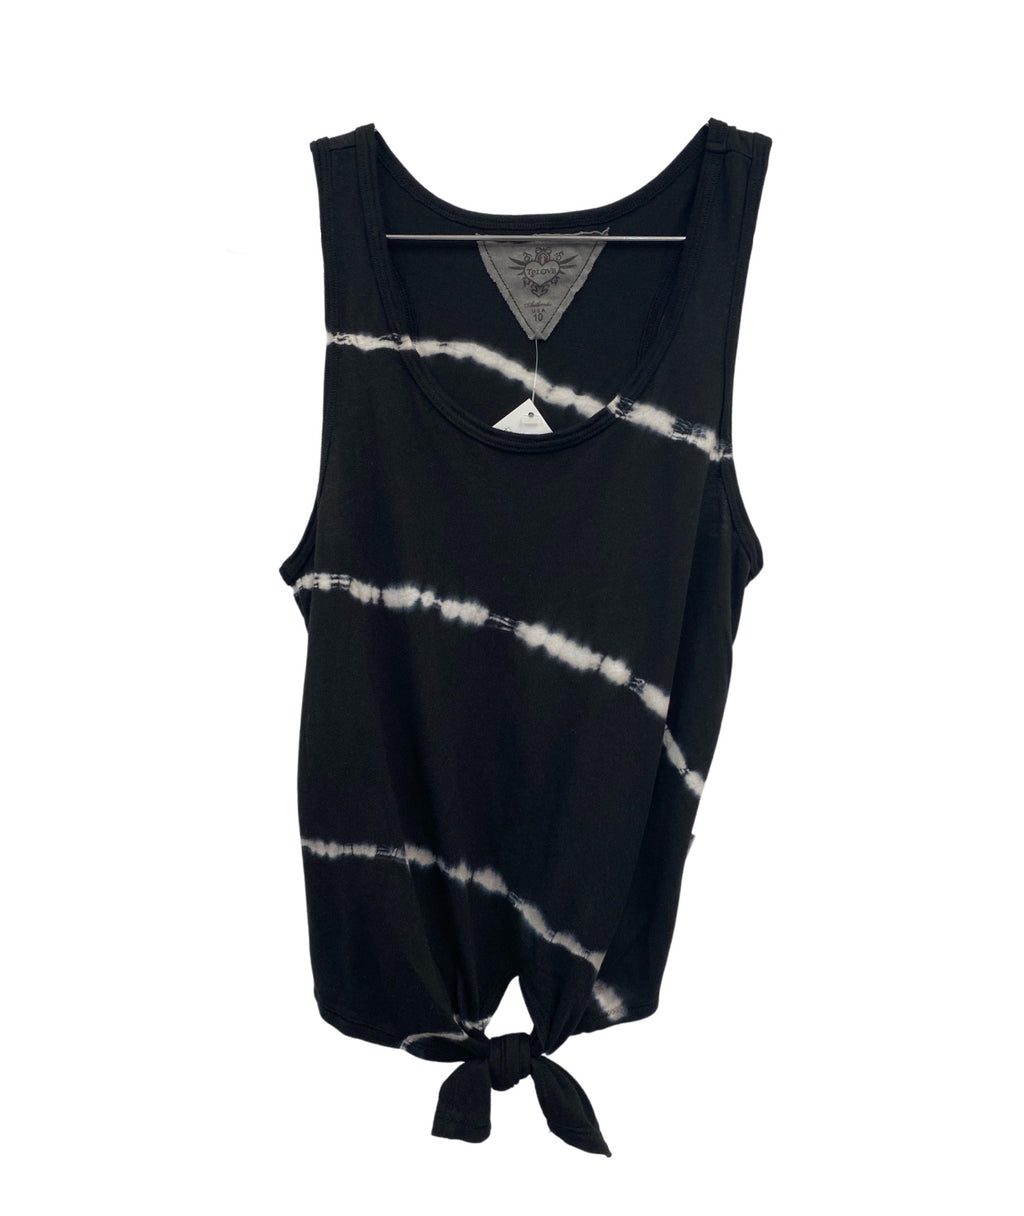 T2 Love Girls Tie Dye Tie Front Tank Black/White